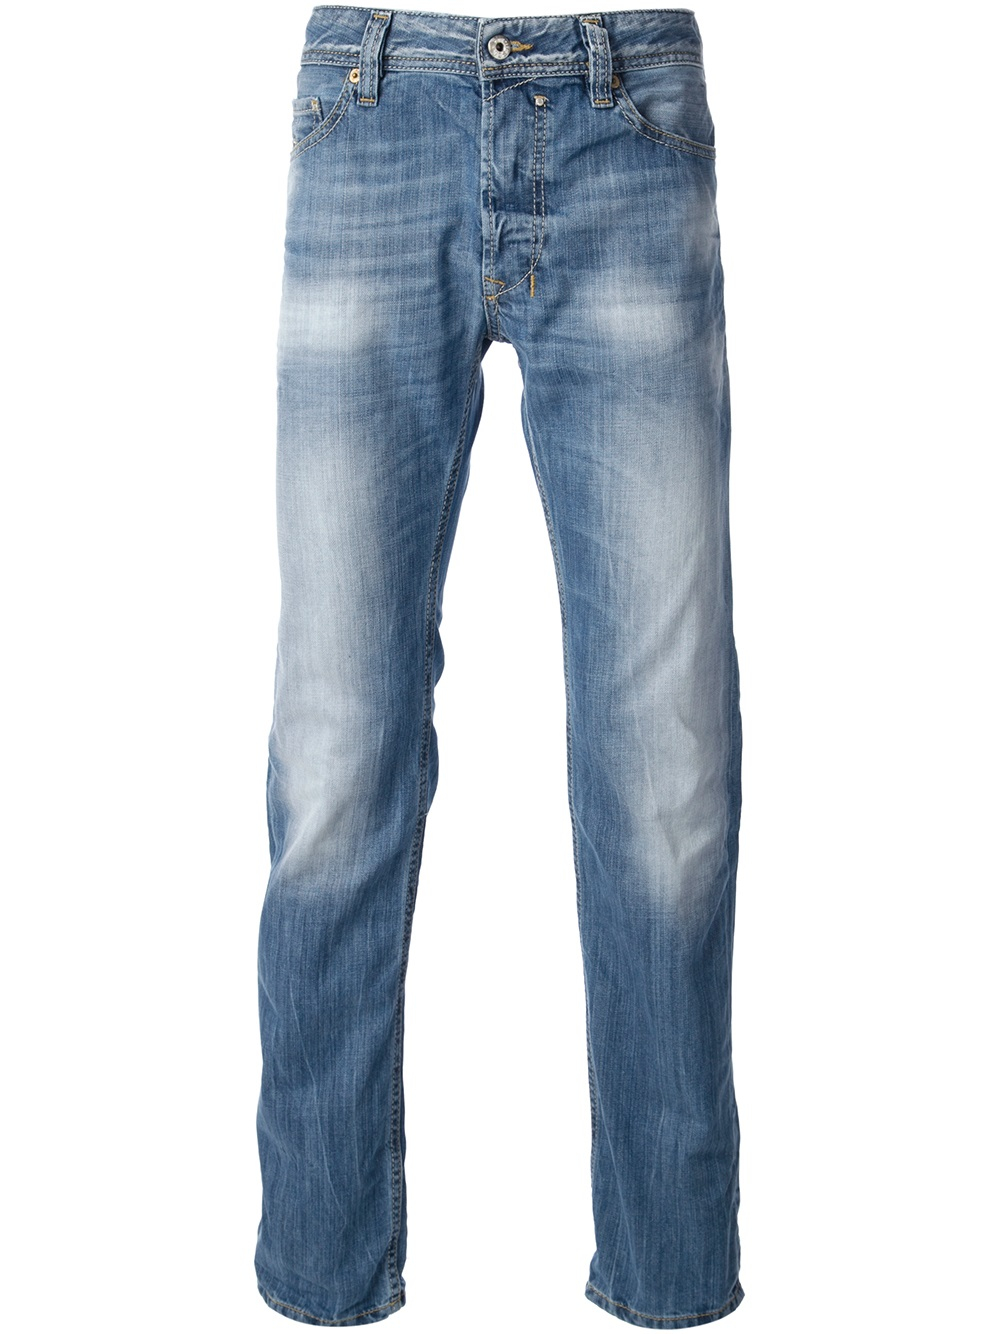 Diesel Stone Washed Jeans In Blue For Men Lyst